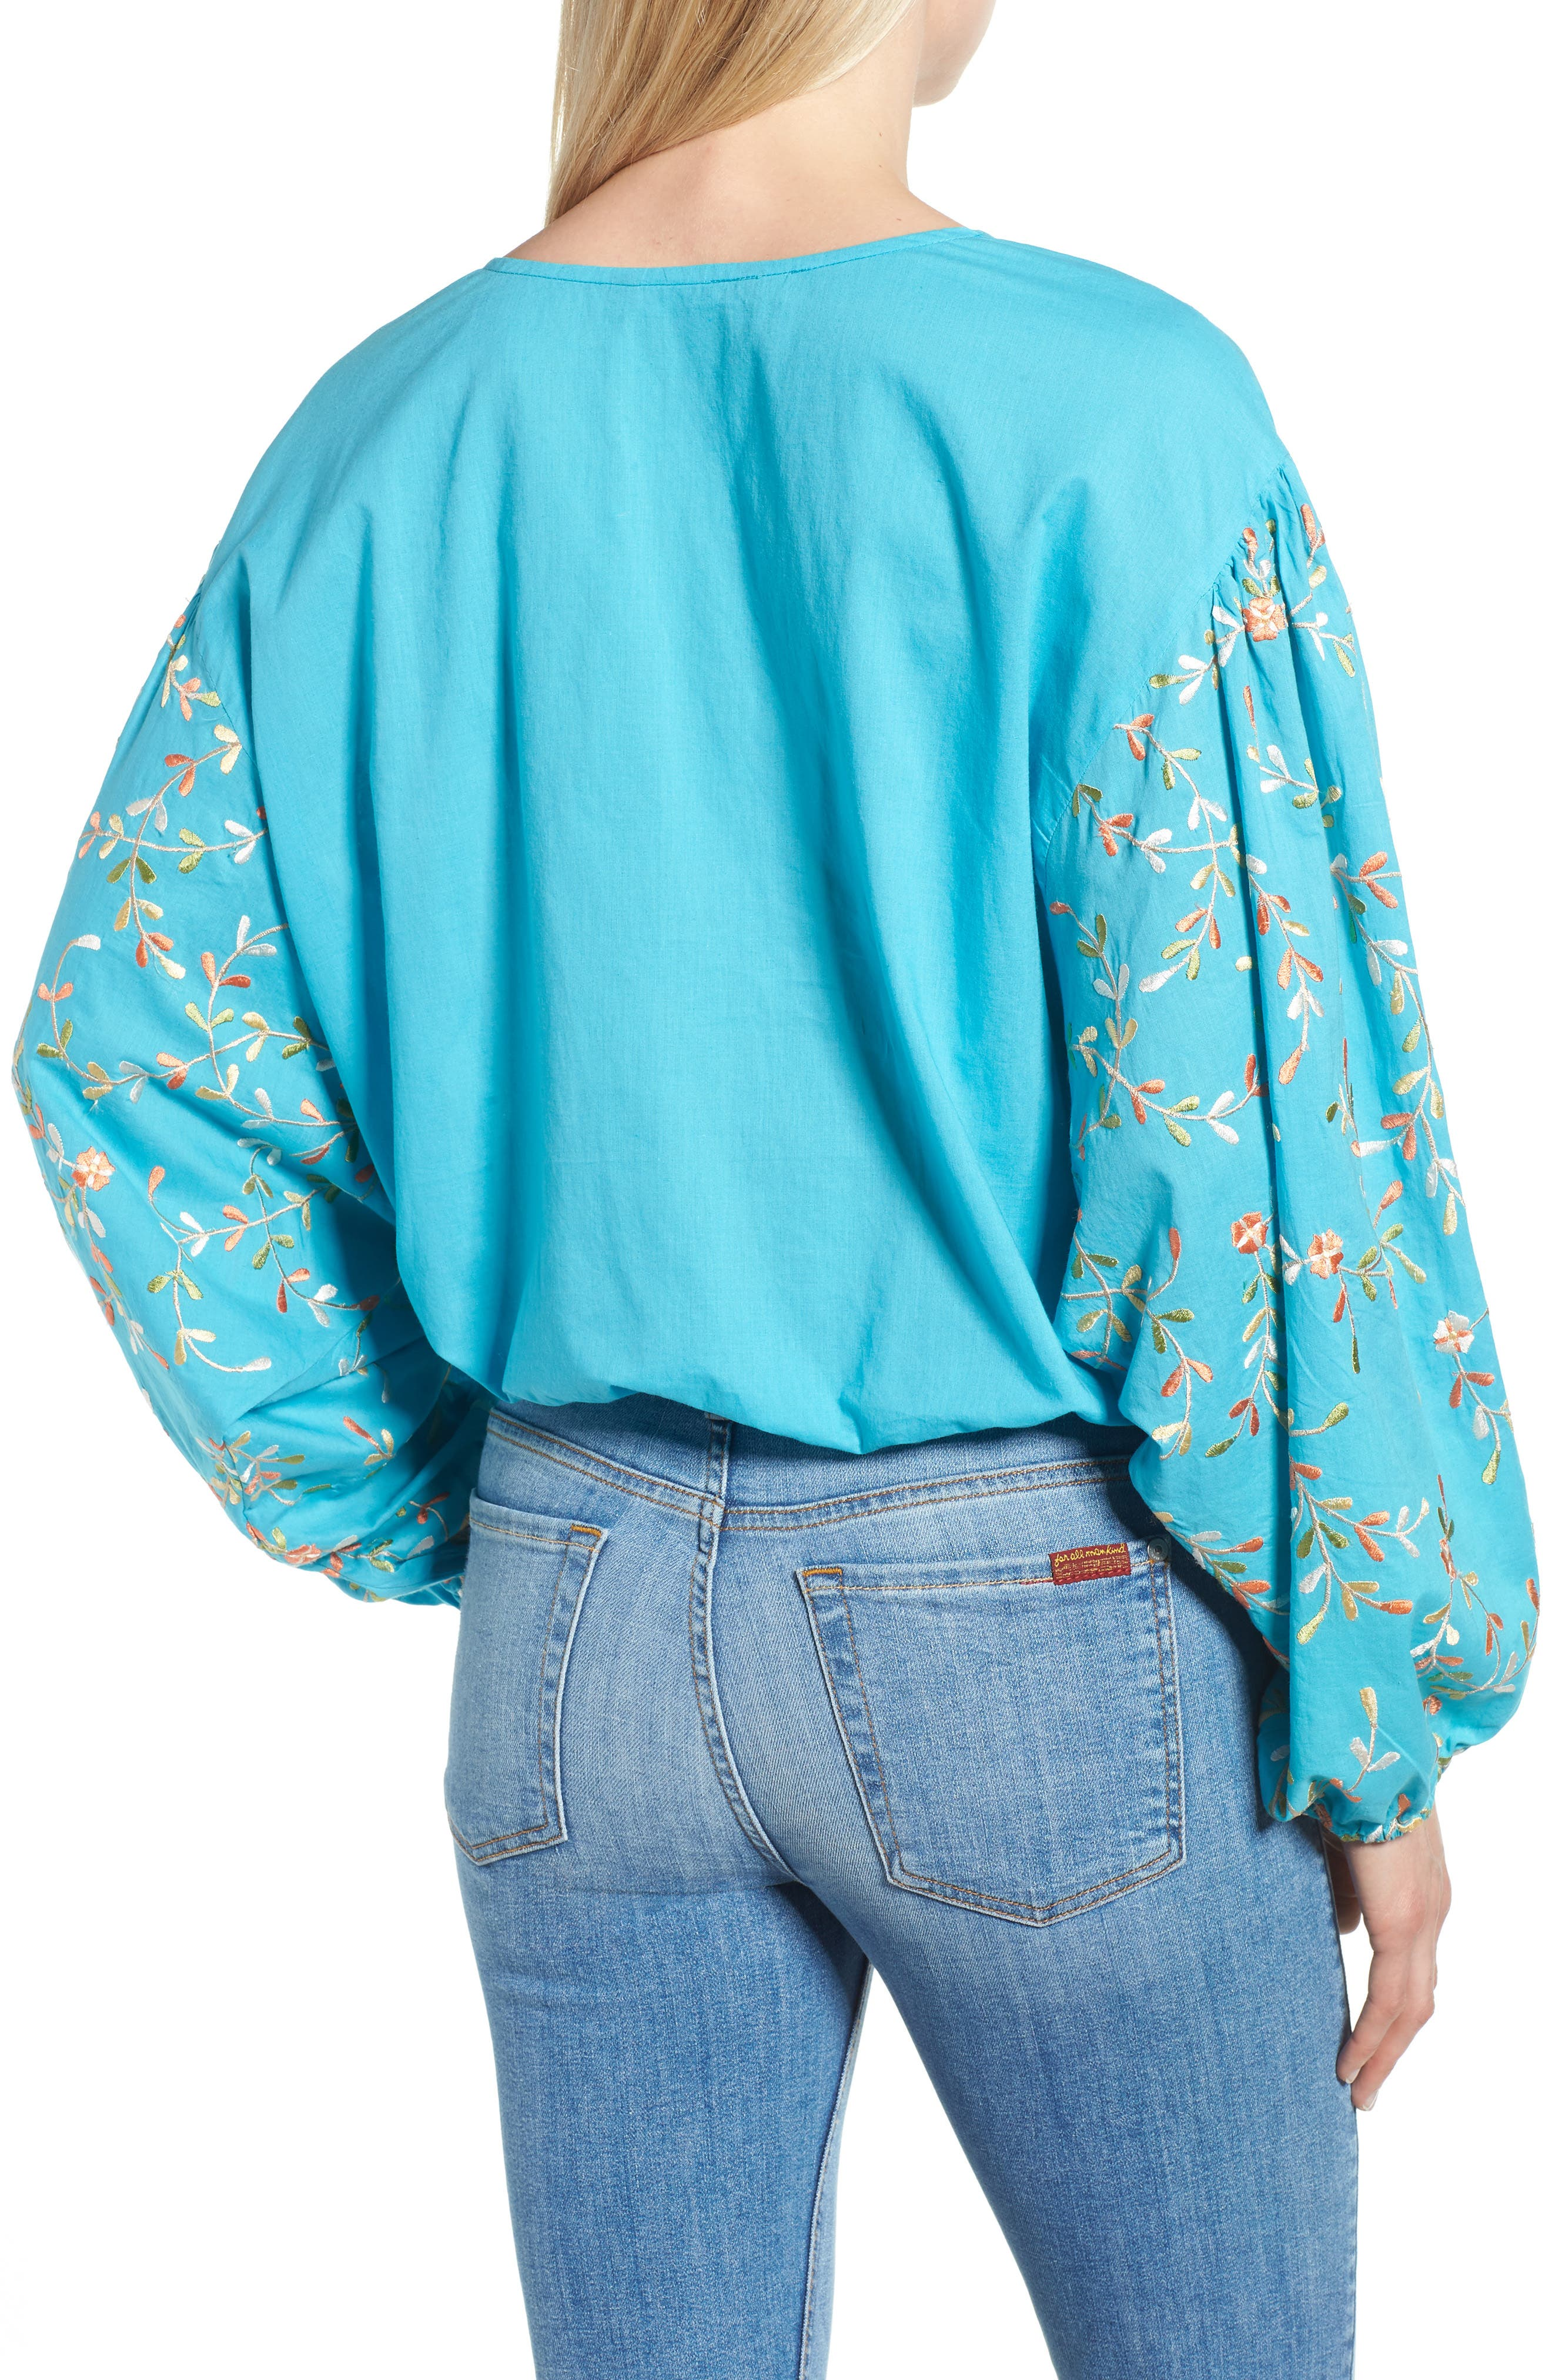 Coline Front Tie Embroidered Sleeve Blouse,                             Alternate thumbnail 2, color,                             Turquoise